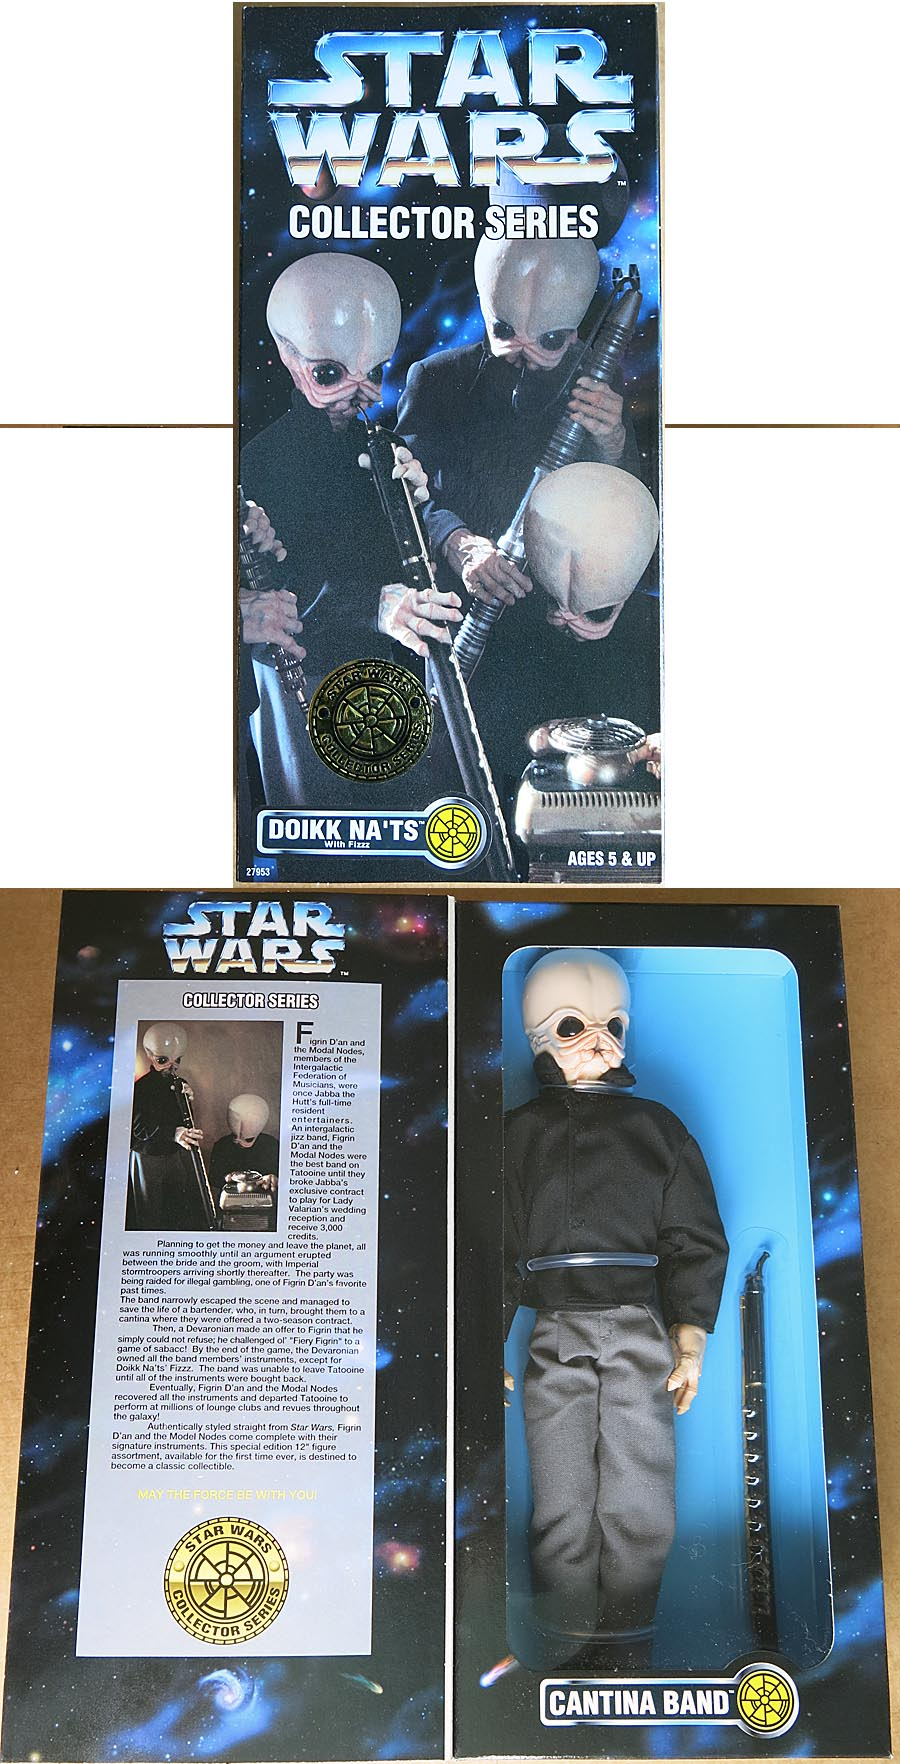 Star Wars Collector Series Cantina Band Doikk Nats 12 inch Boxed Figure